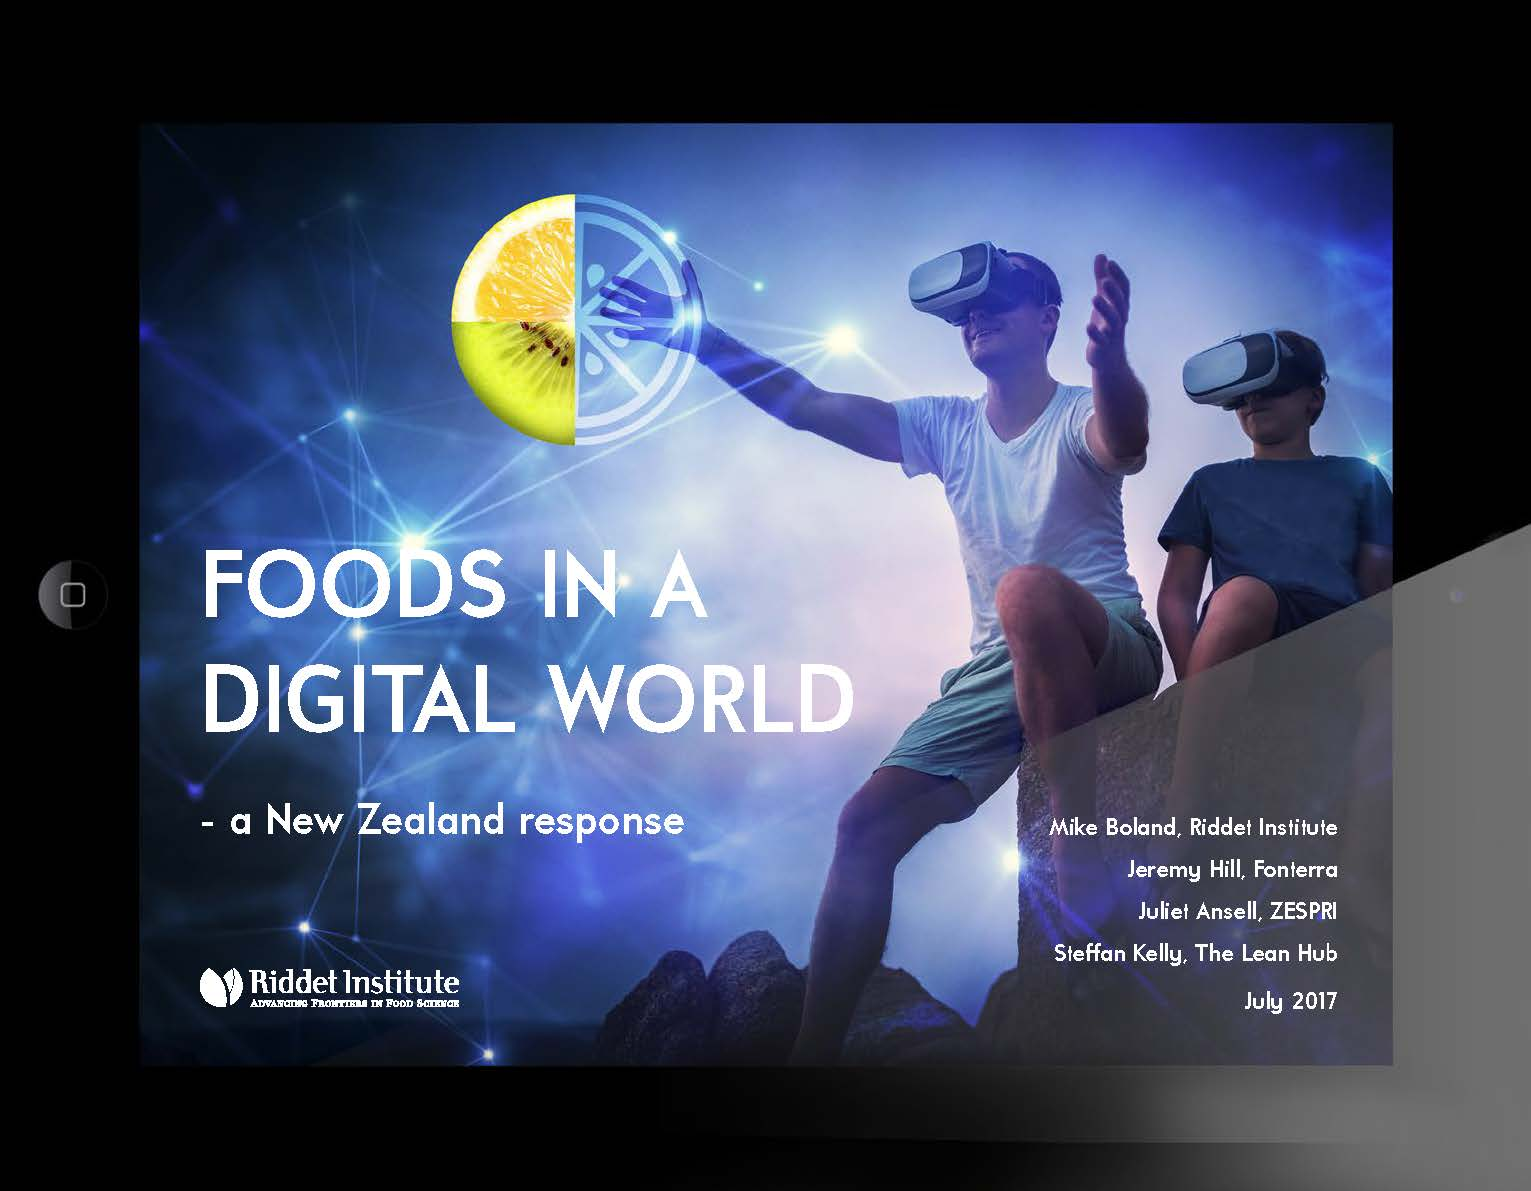 Foods in a Digital World